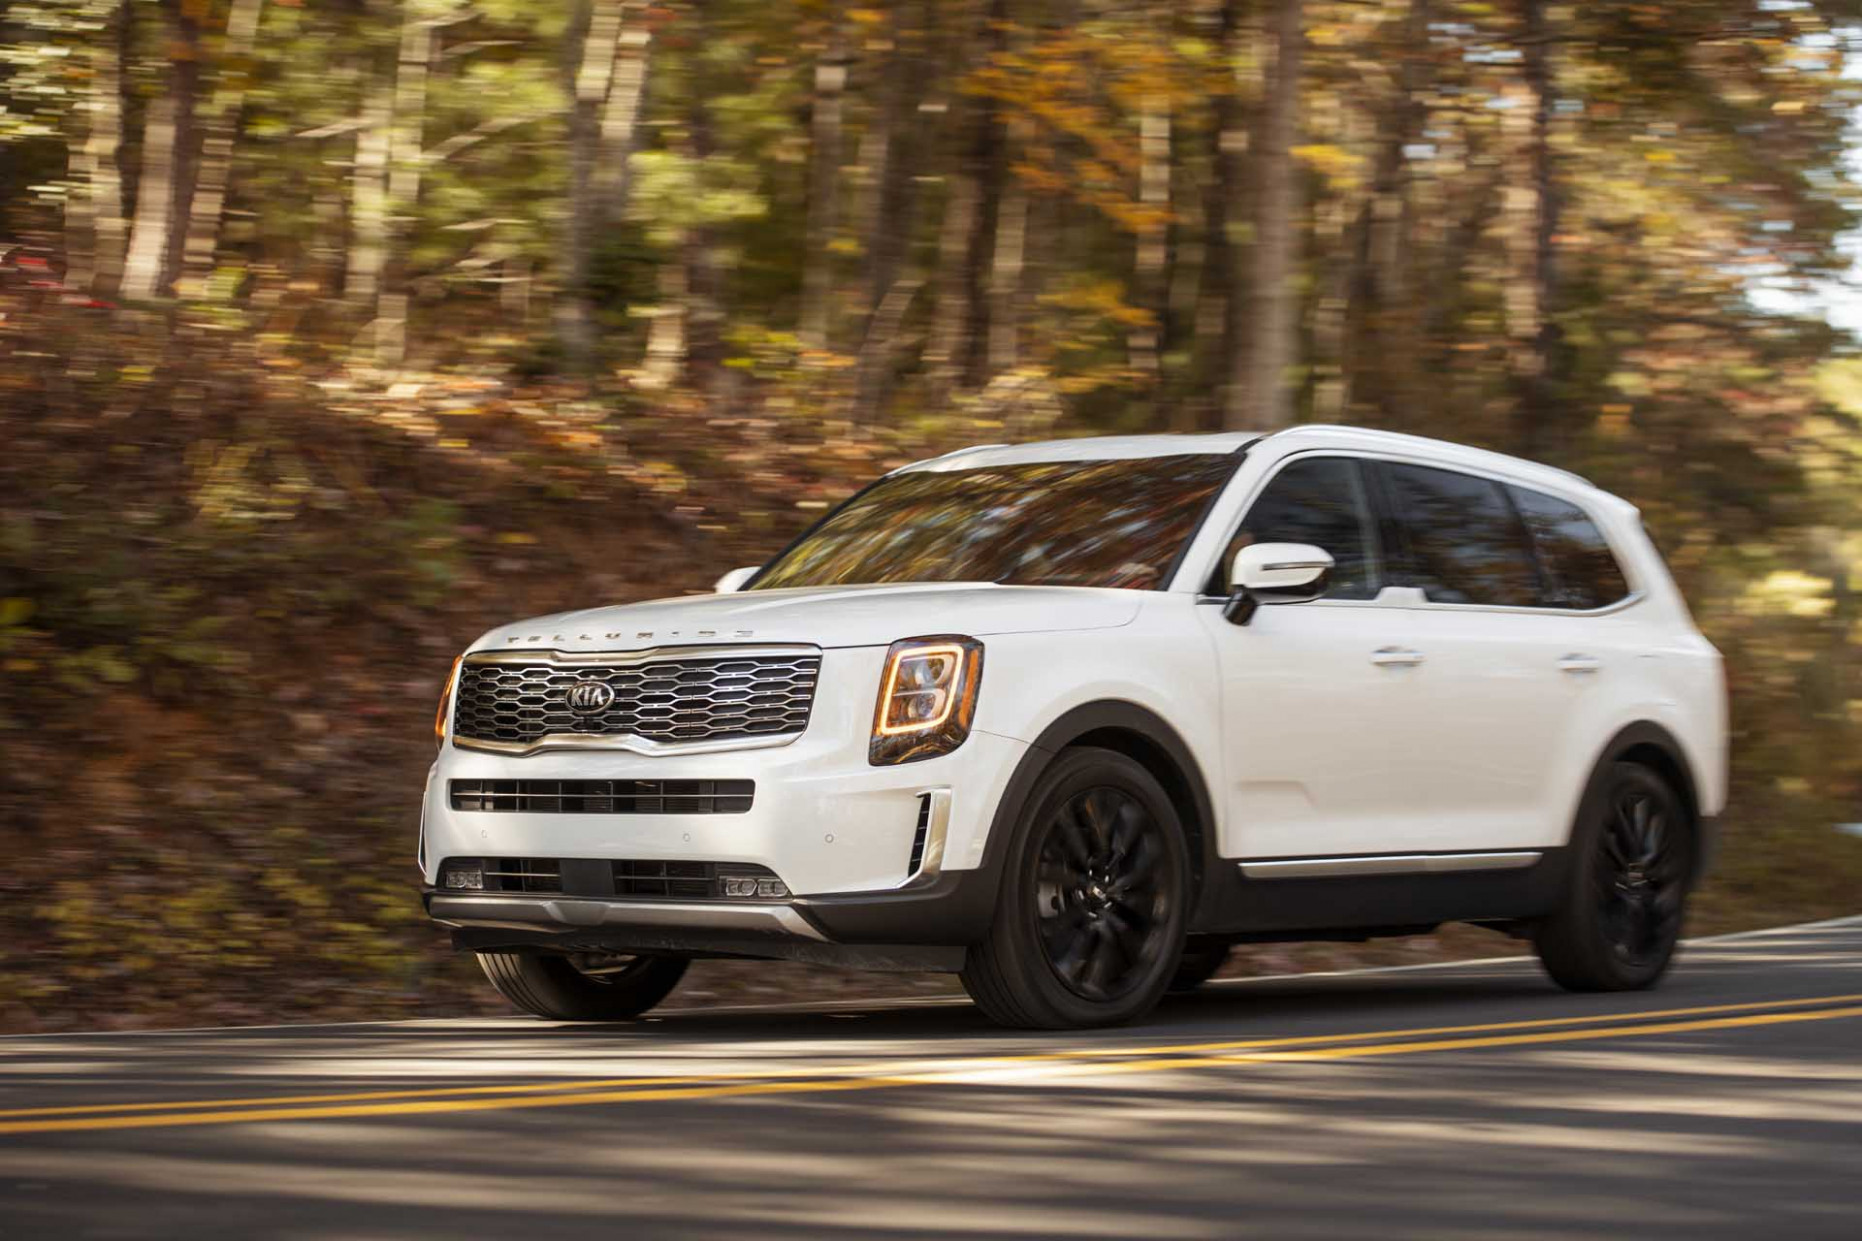 7 Kia Telluride Review, Ratings, Specs, Prices, and Photos ...